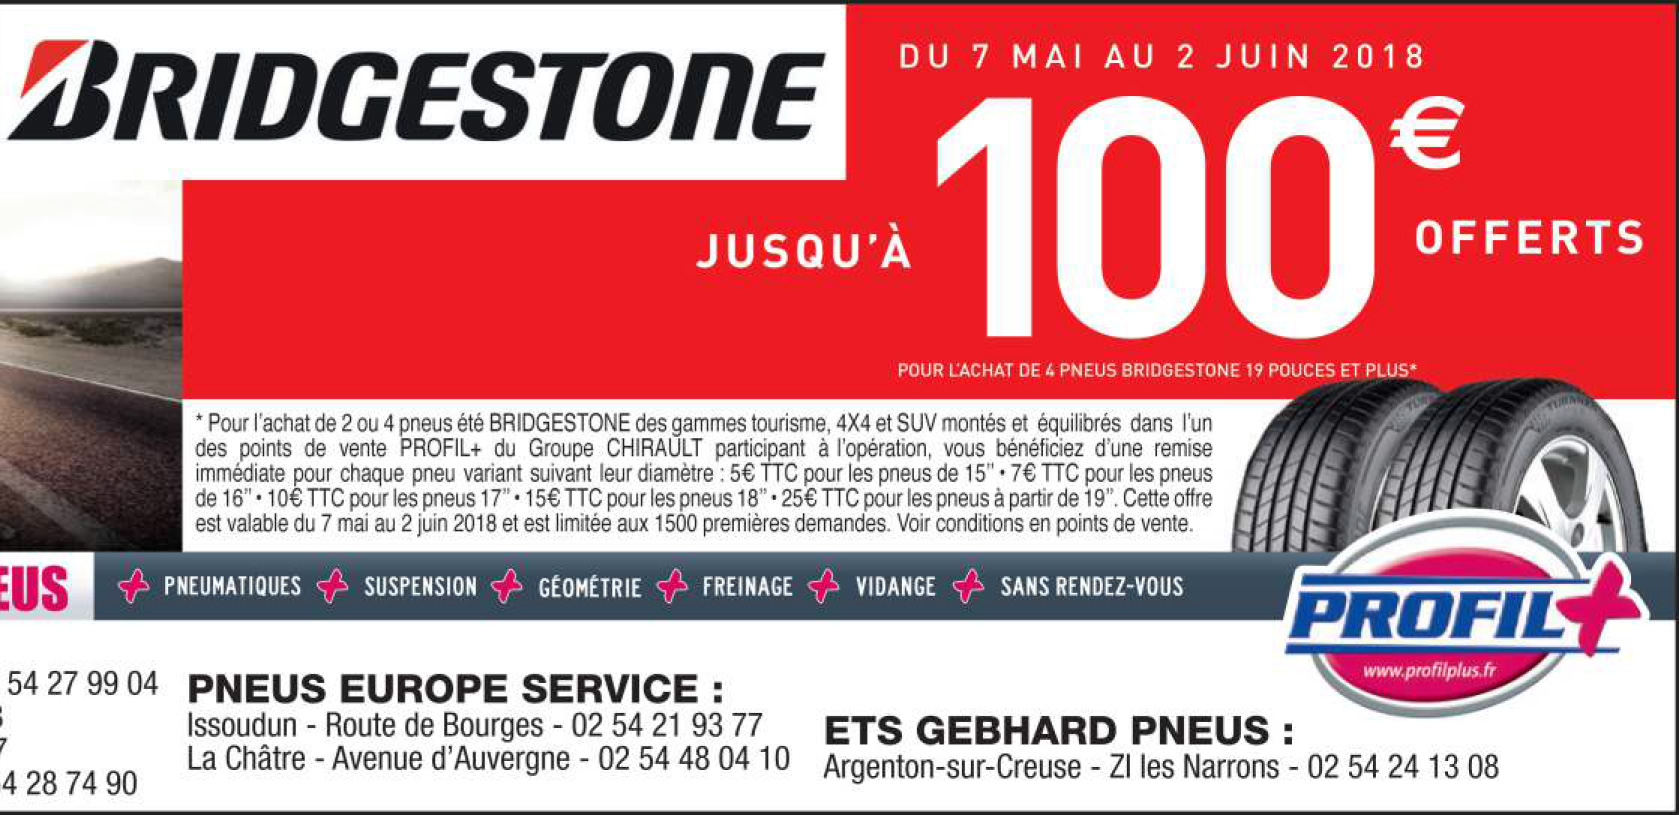 PROMOTION BRIDGESTONE